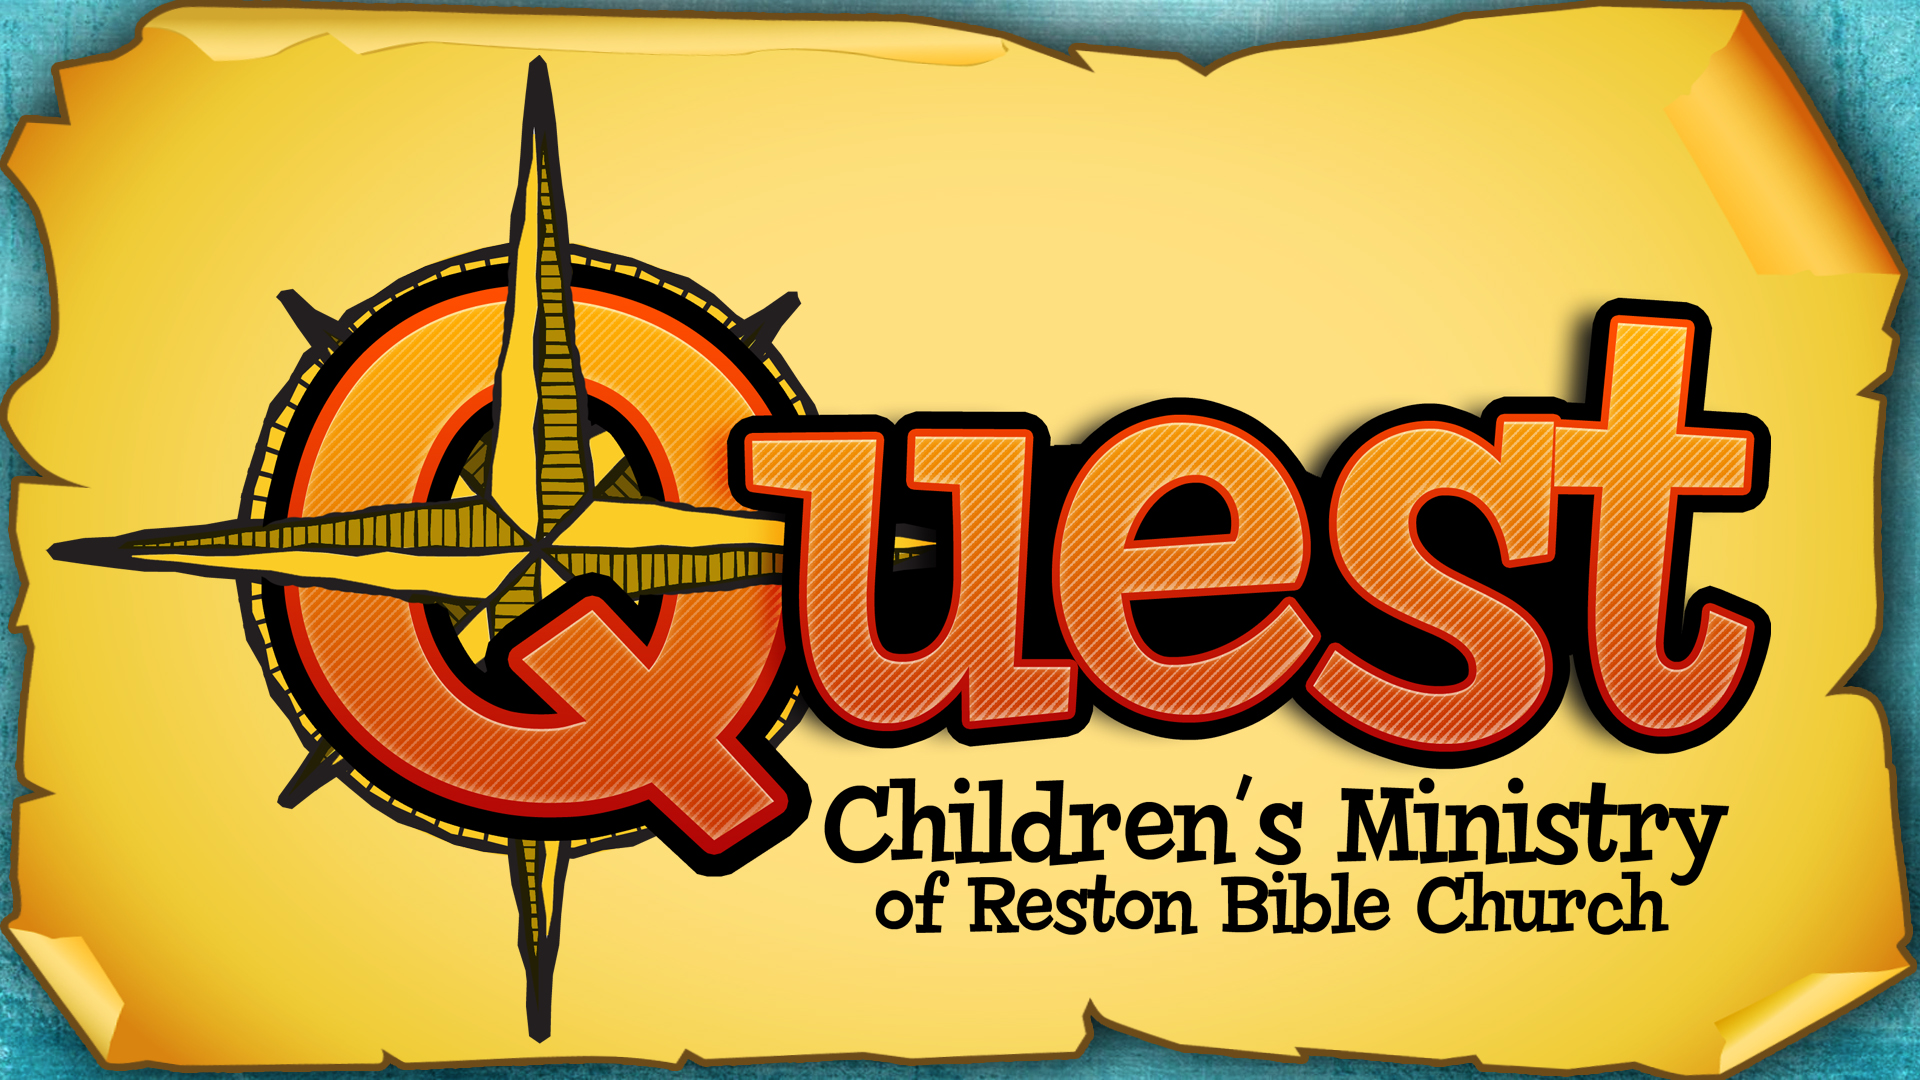 Quest-Slide-title